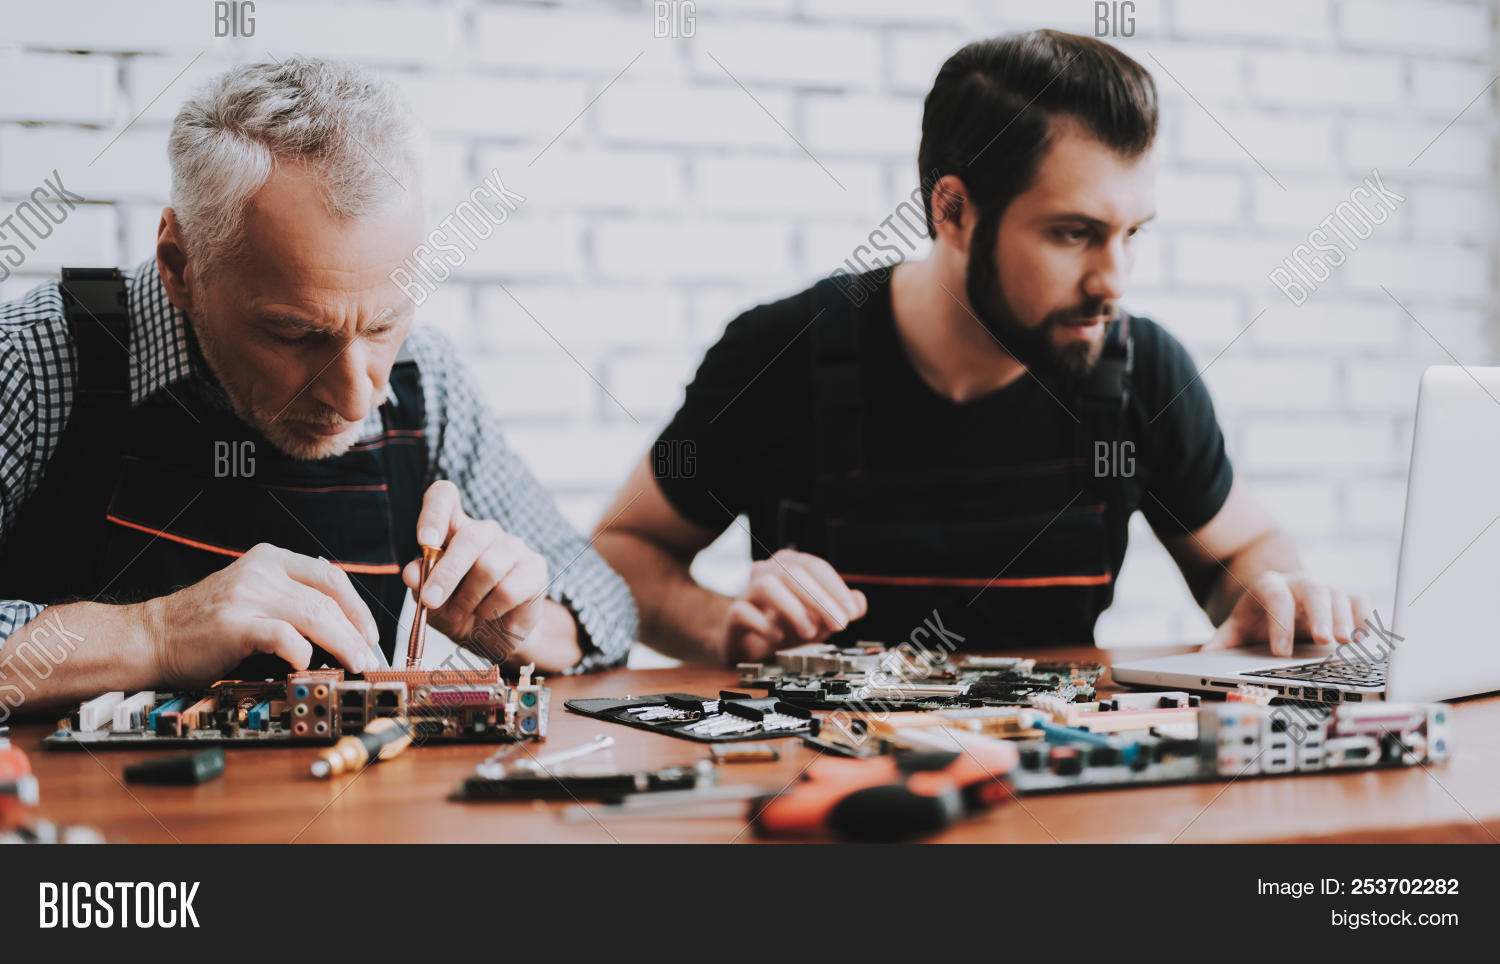 Two Men Repairing Hardware Equipment From Pc Repair Shop Worker And Diagnostic Of Electronic Circuit Board Stock Photo Appliance Assembly